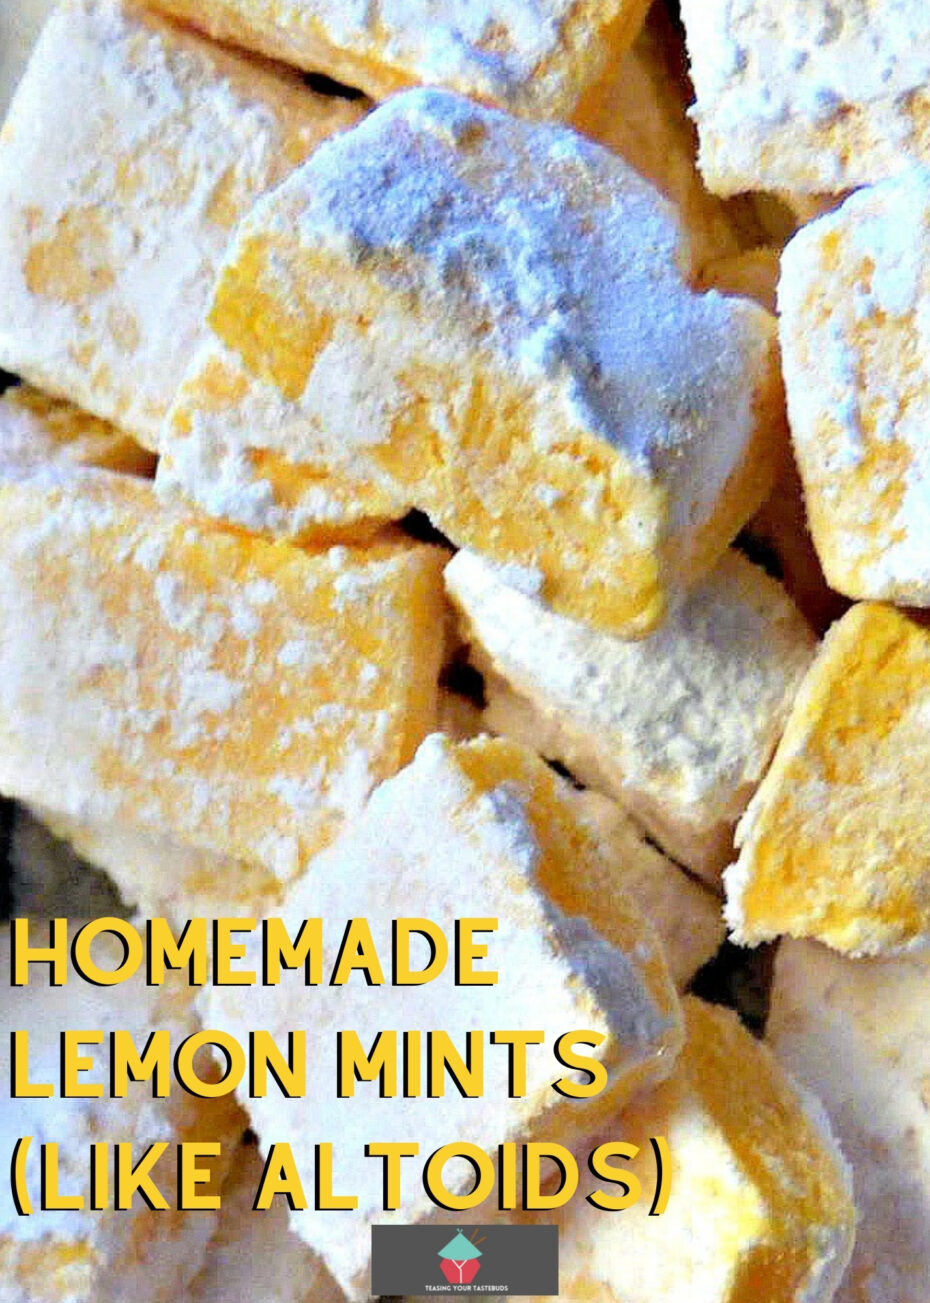 Homemade Lemon Mints are just like the famous Altoid mints, and have a curiously strong flavor. Easy and fun to make little candies!